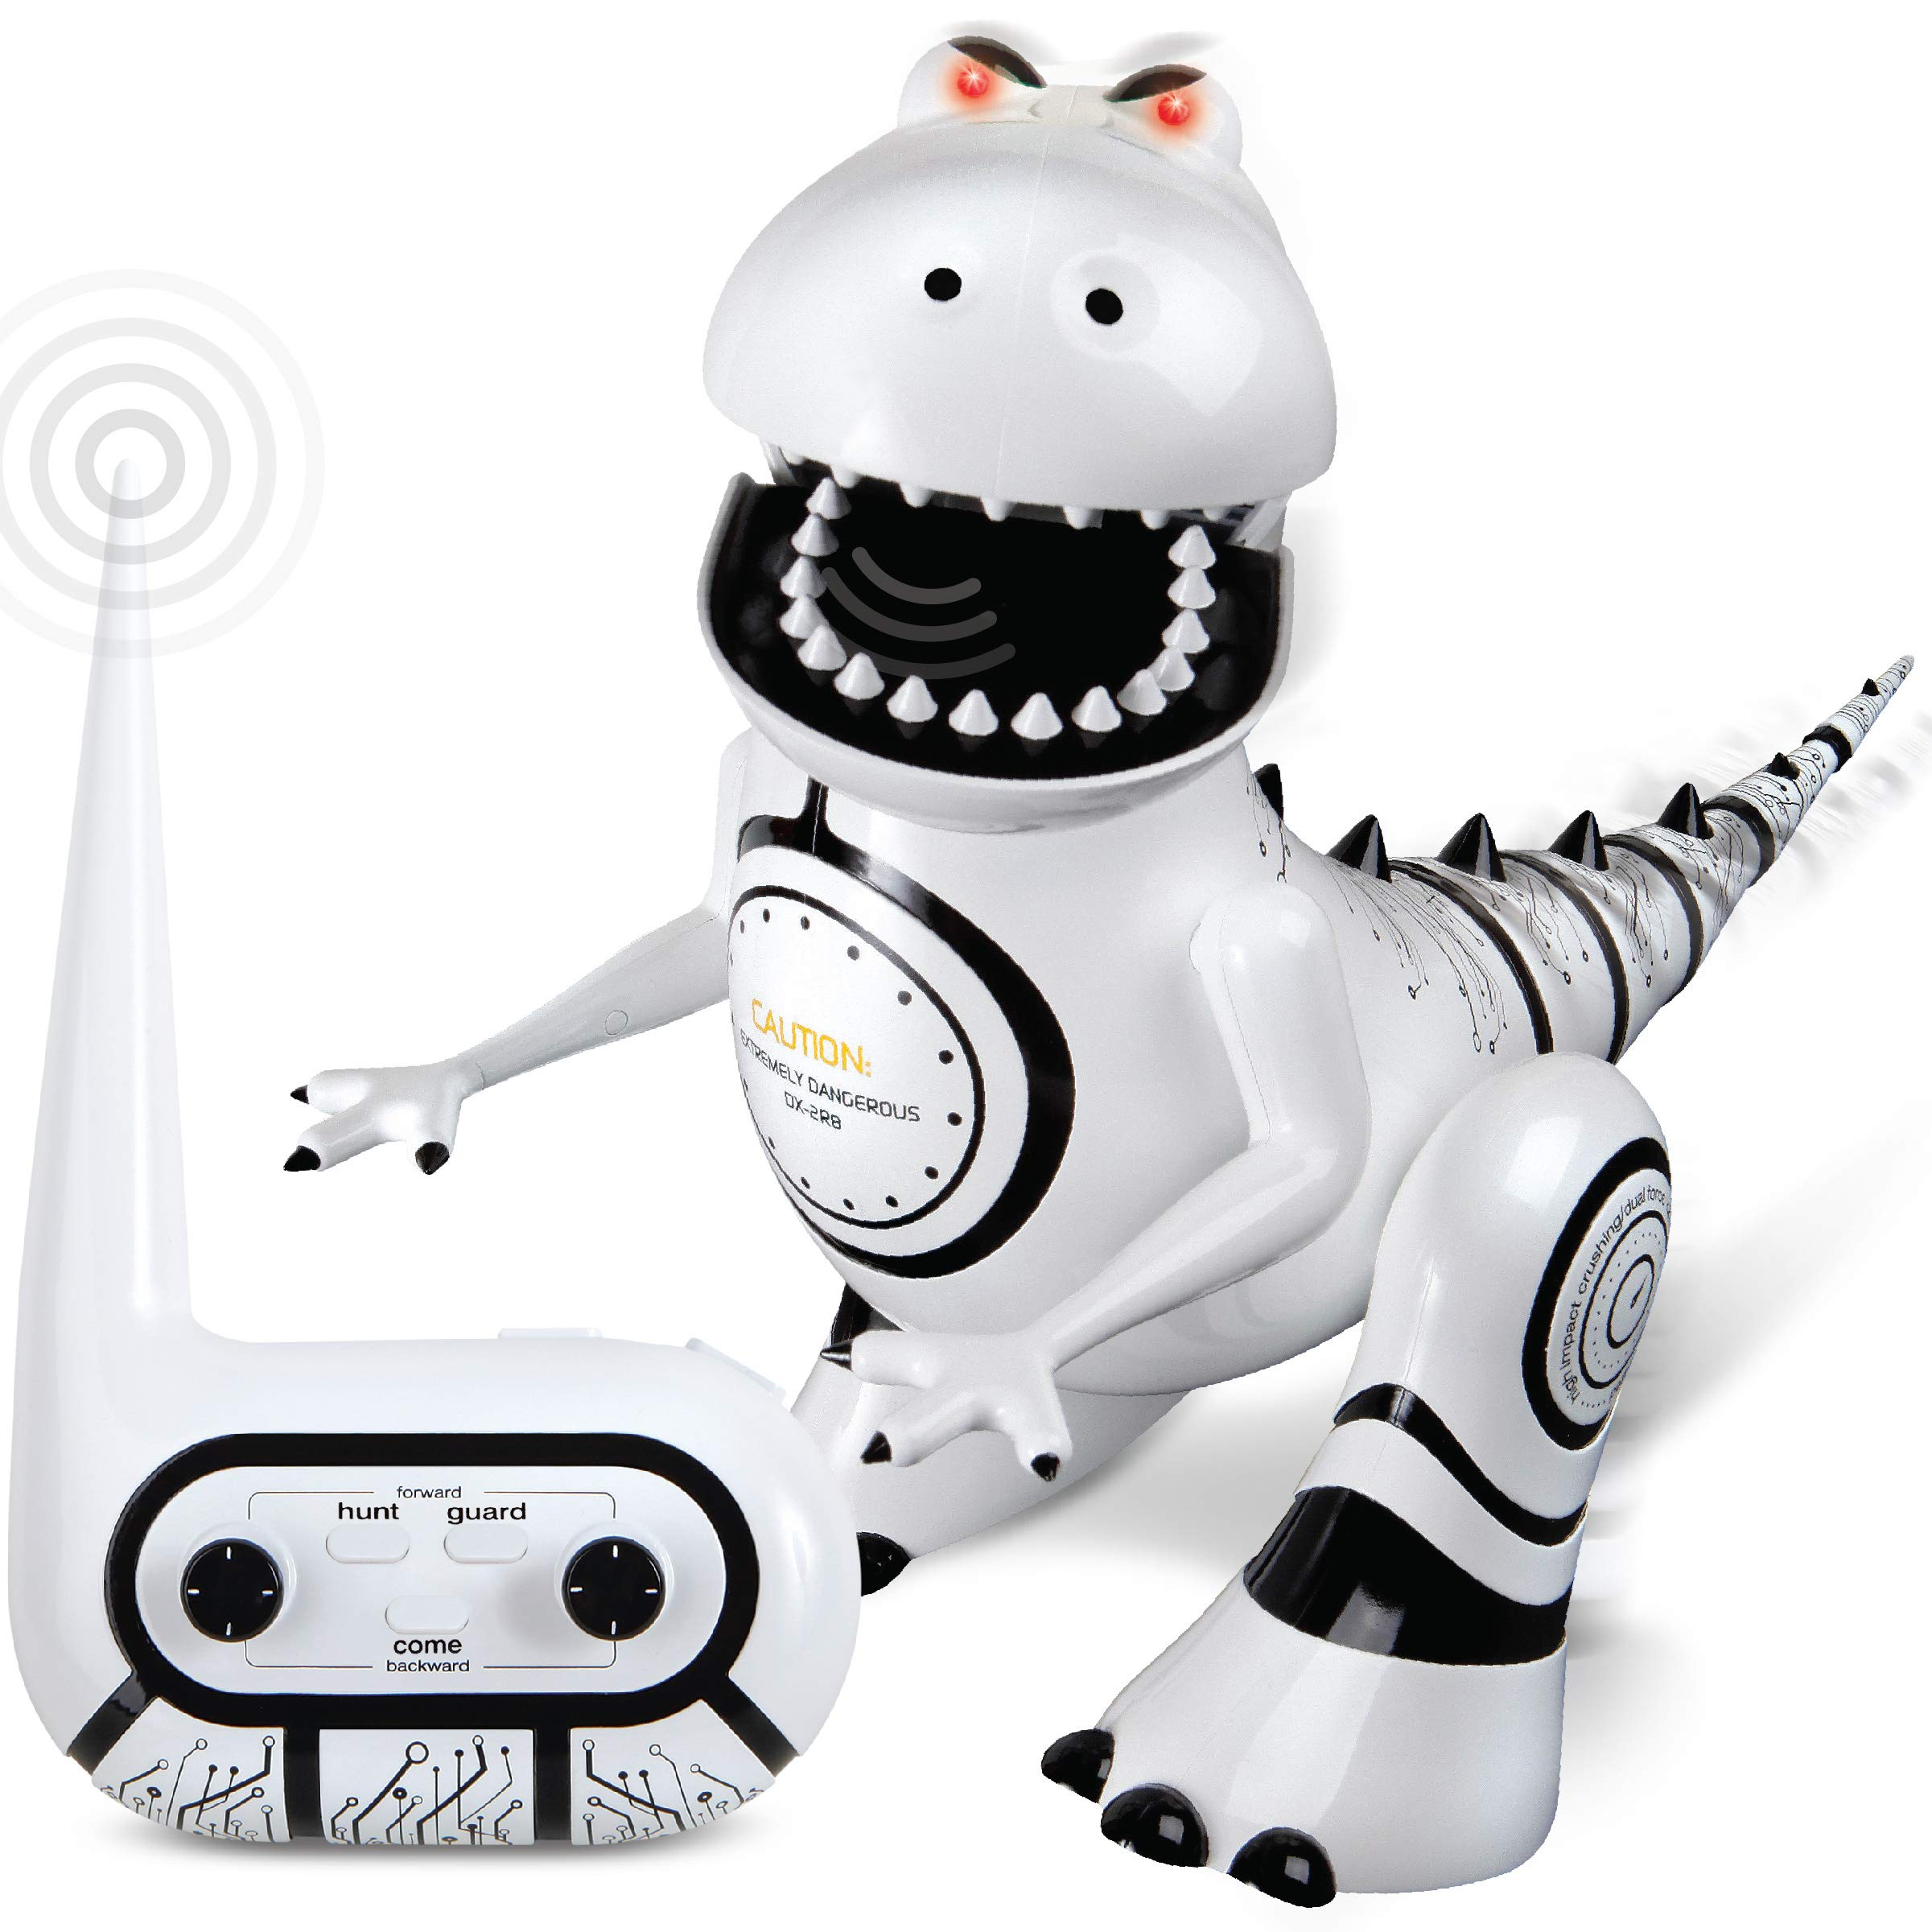 SHARPER IMAGE Interactive RC Robotosaur Dinosaur, Built-in Mood Sensors and Color-Changing LED Eyes, Motion Detection, Growls, Snores, Battery Operated- White/Black